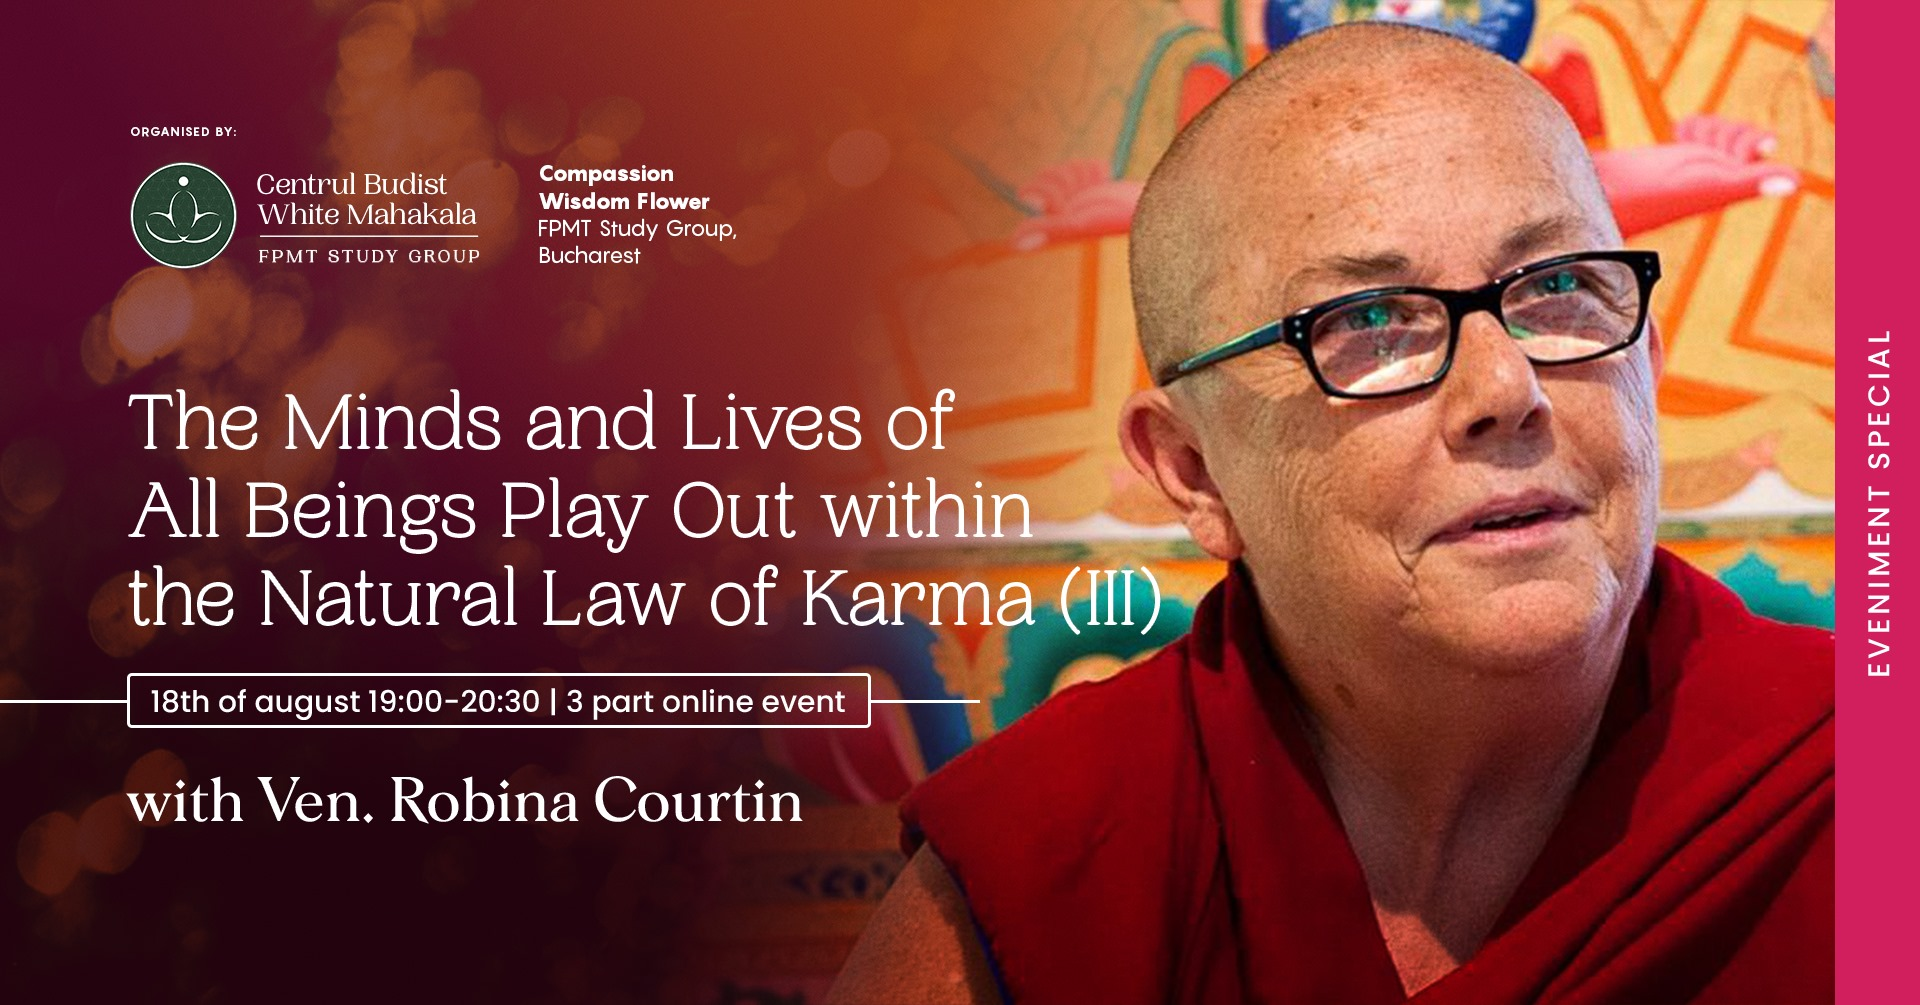 The Minds and Lives of All Beings Play Out within the Natural Law of Karma(III)